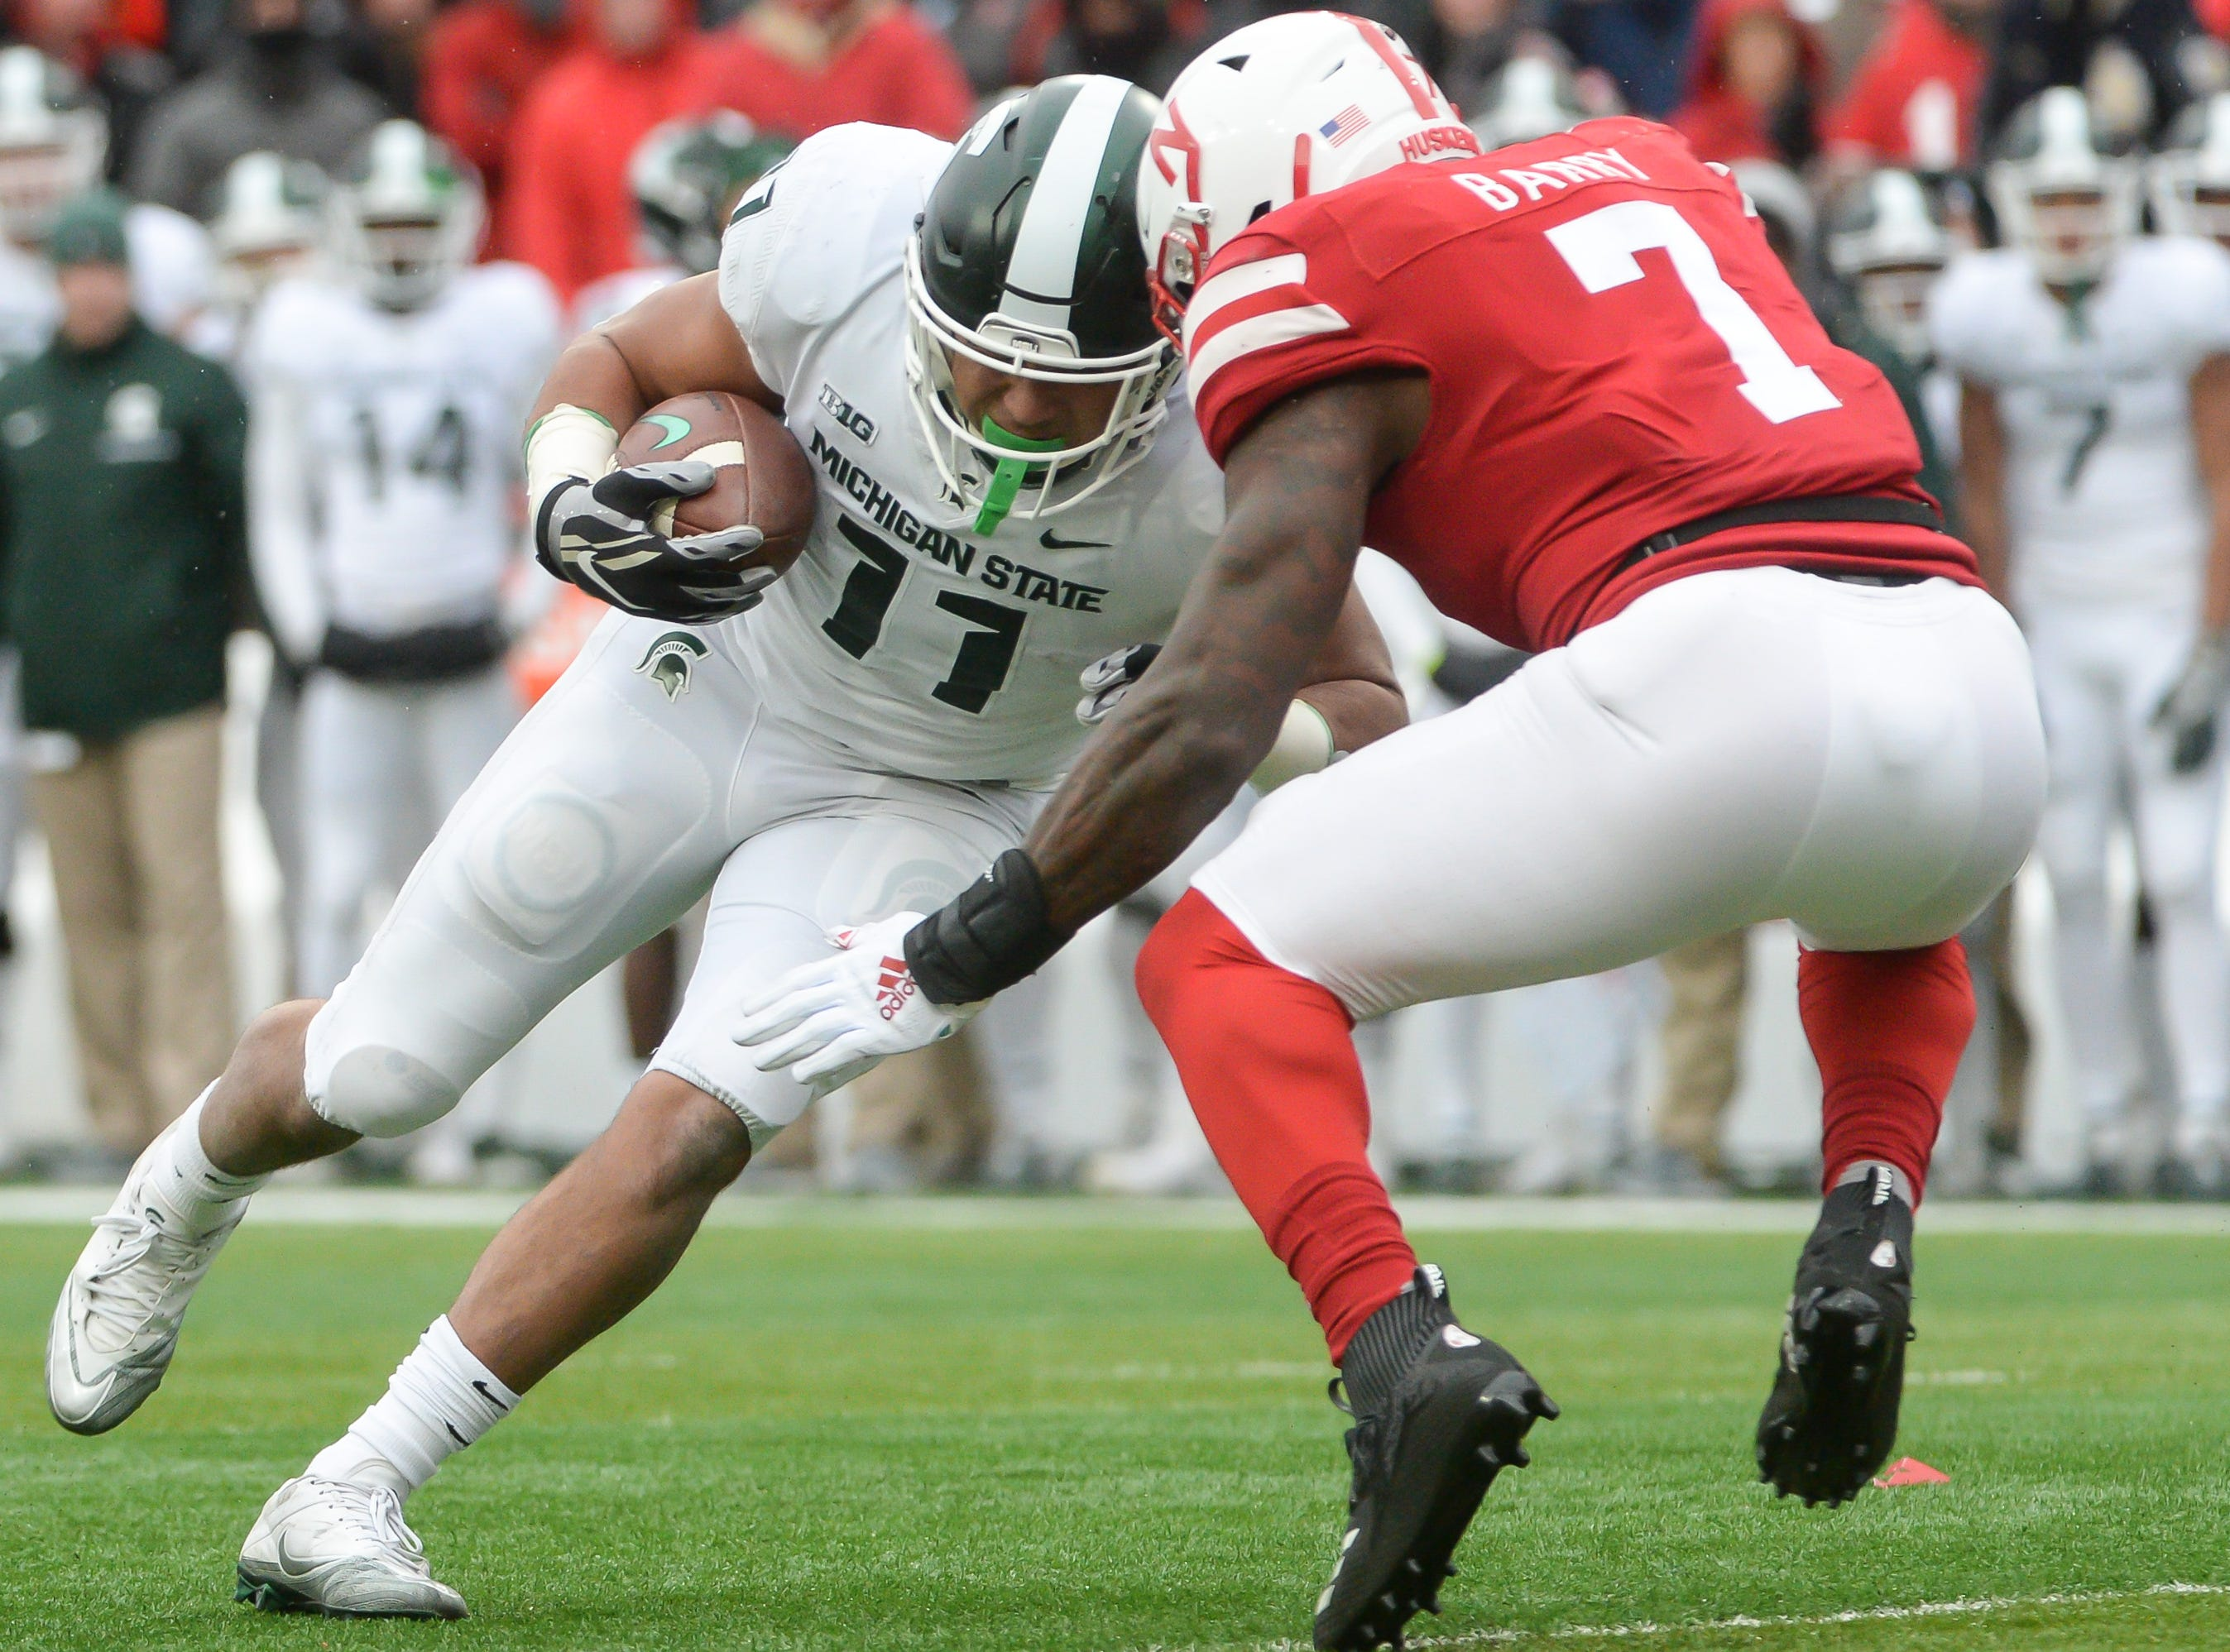 Michigan State running back Connor Heyward drives for additional yards against Nebraska linebacker Mohamed Barry on Saturday, Nov. 17, 2018, in Lincoln, Neb.